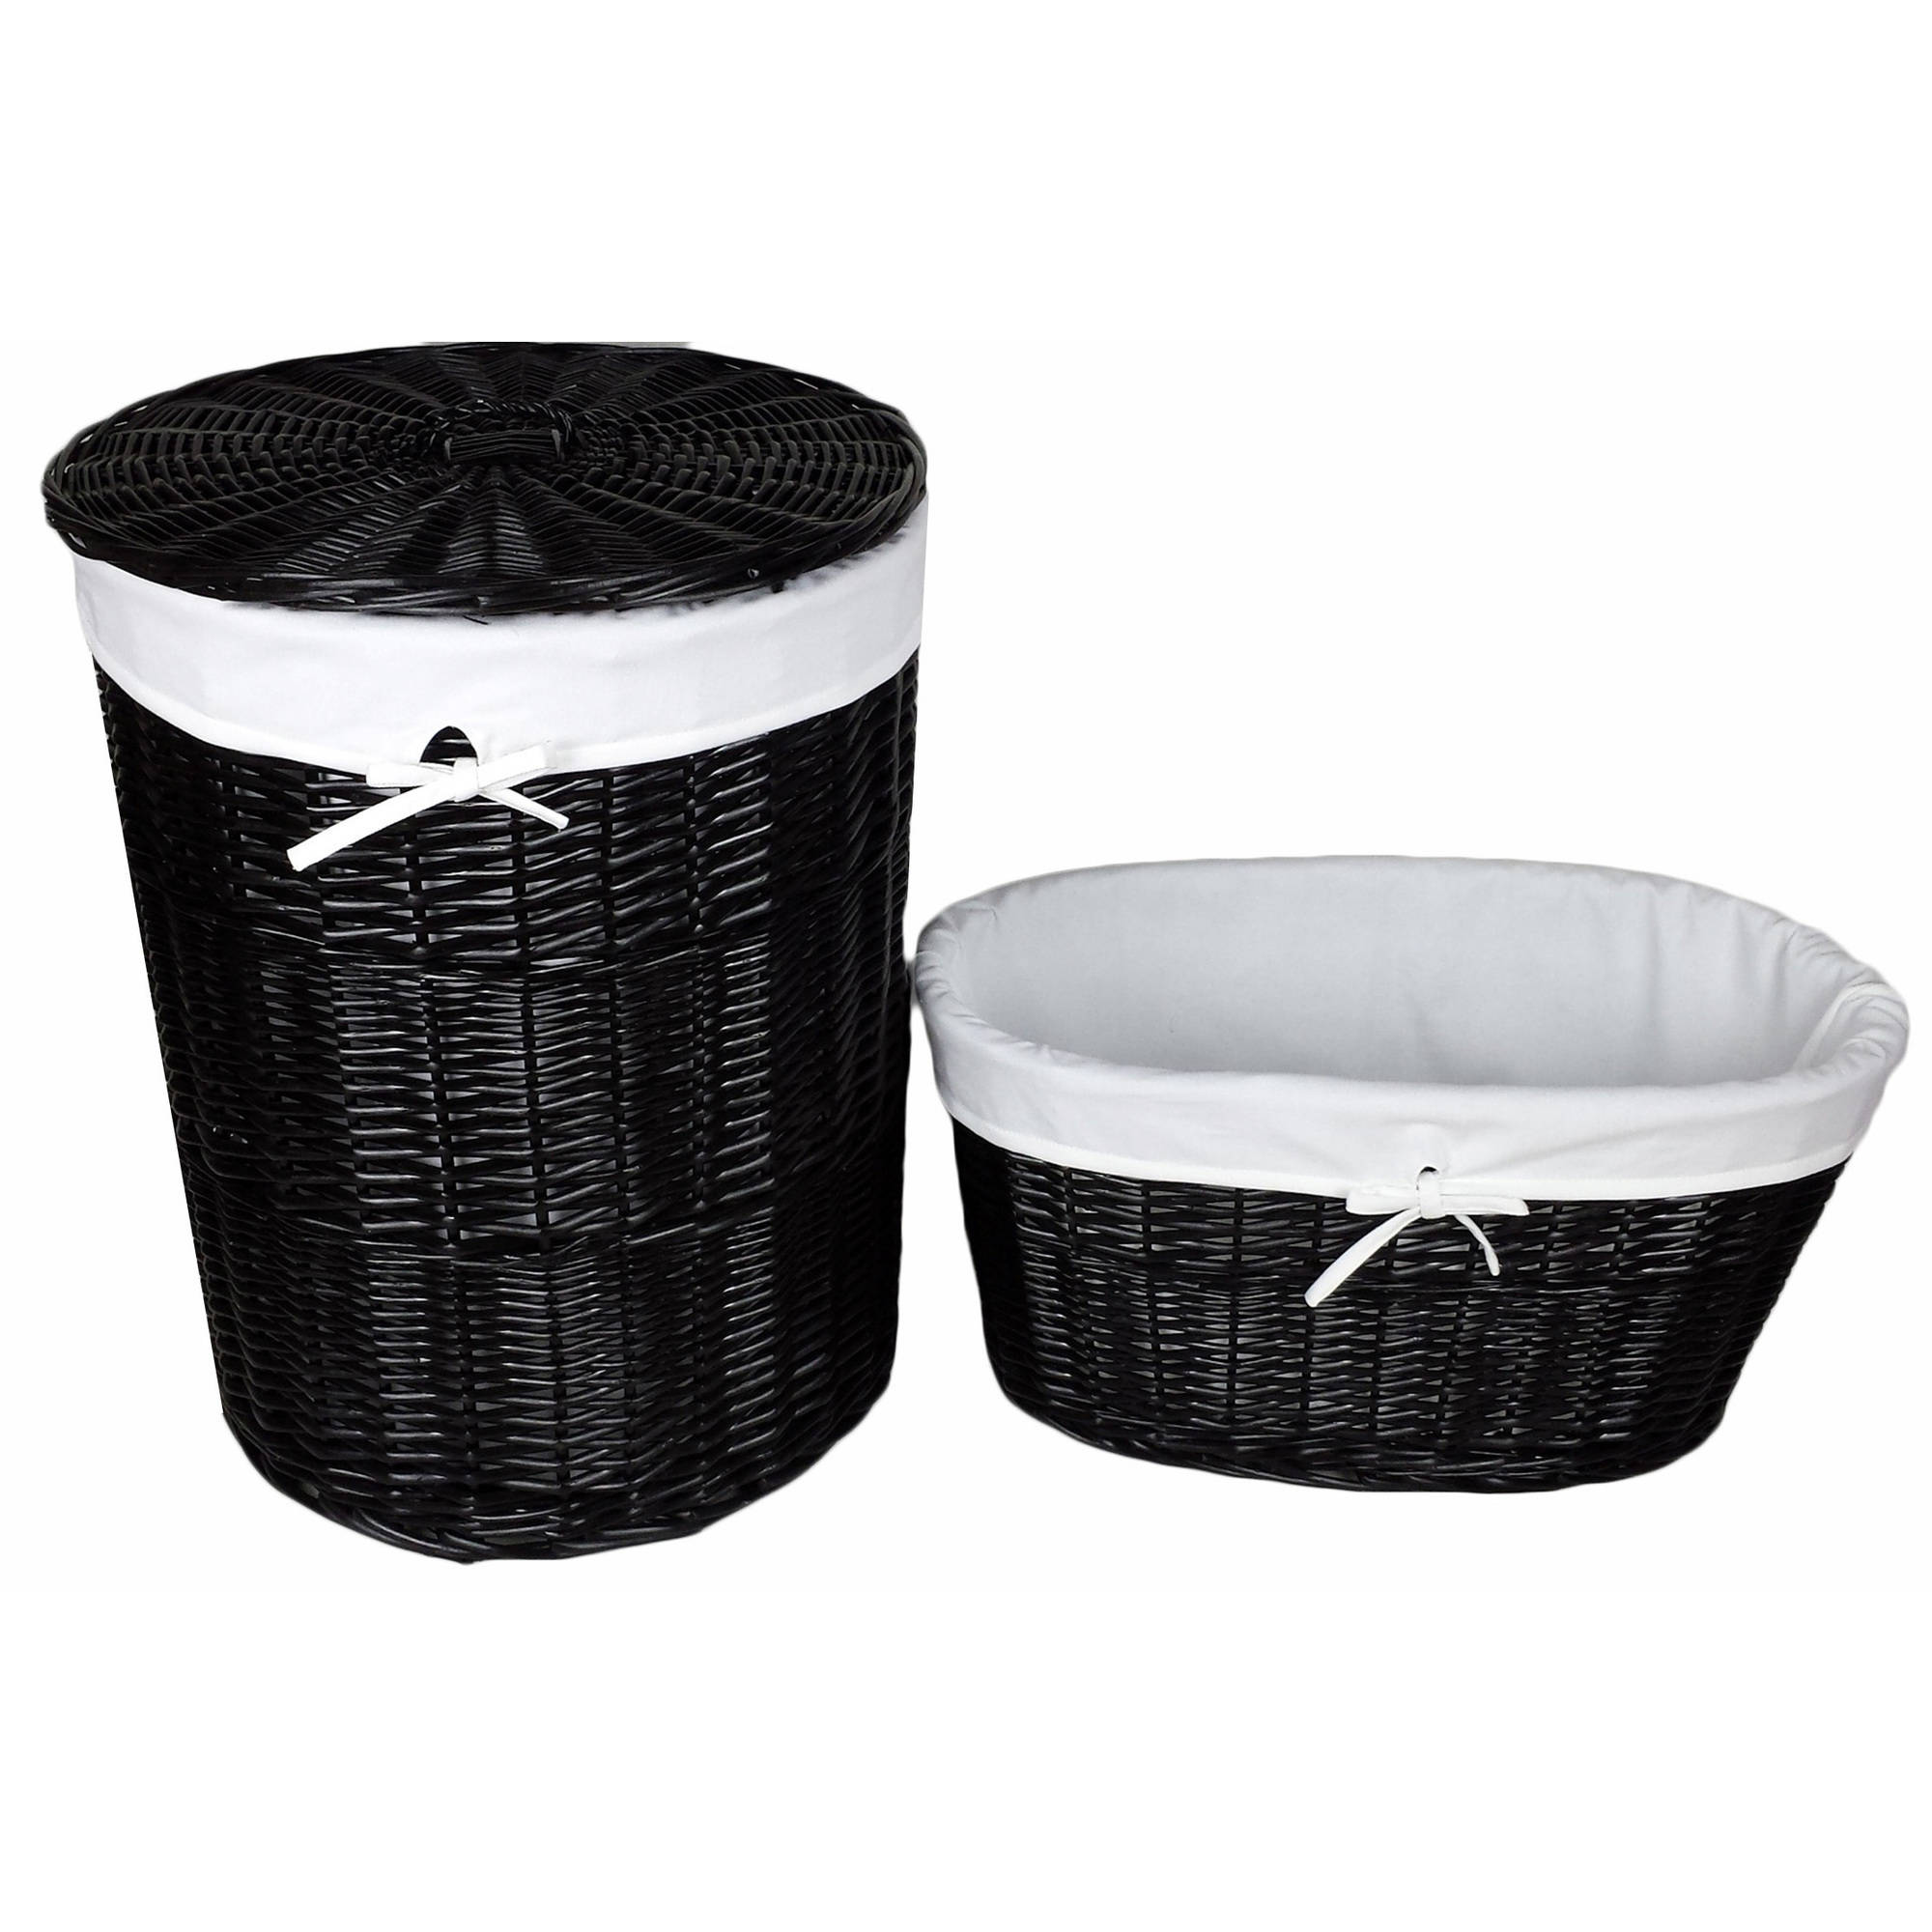 Baum Black Willow Hamper and Laundry Basket by